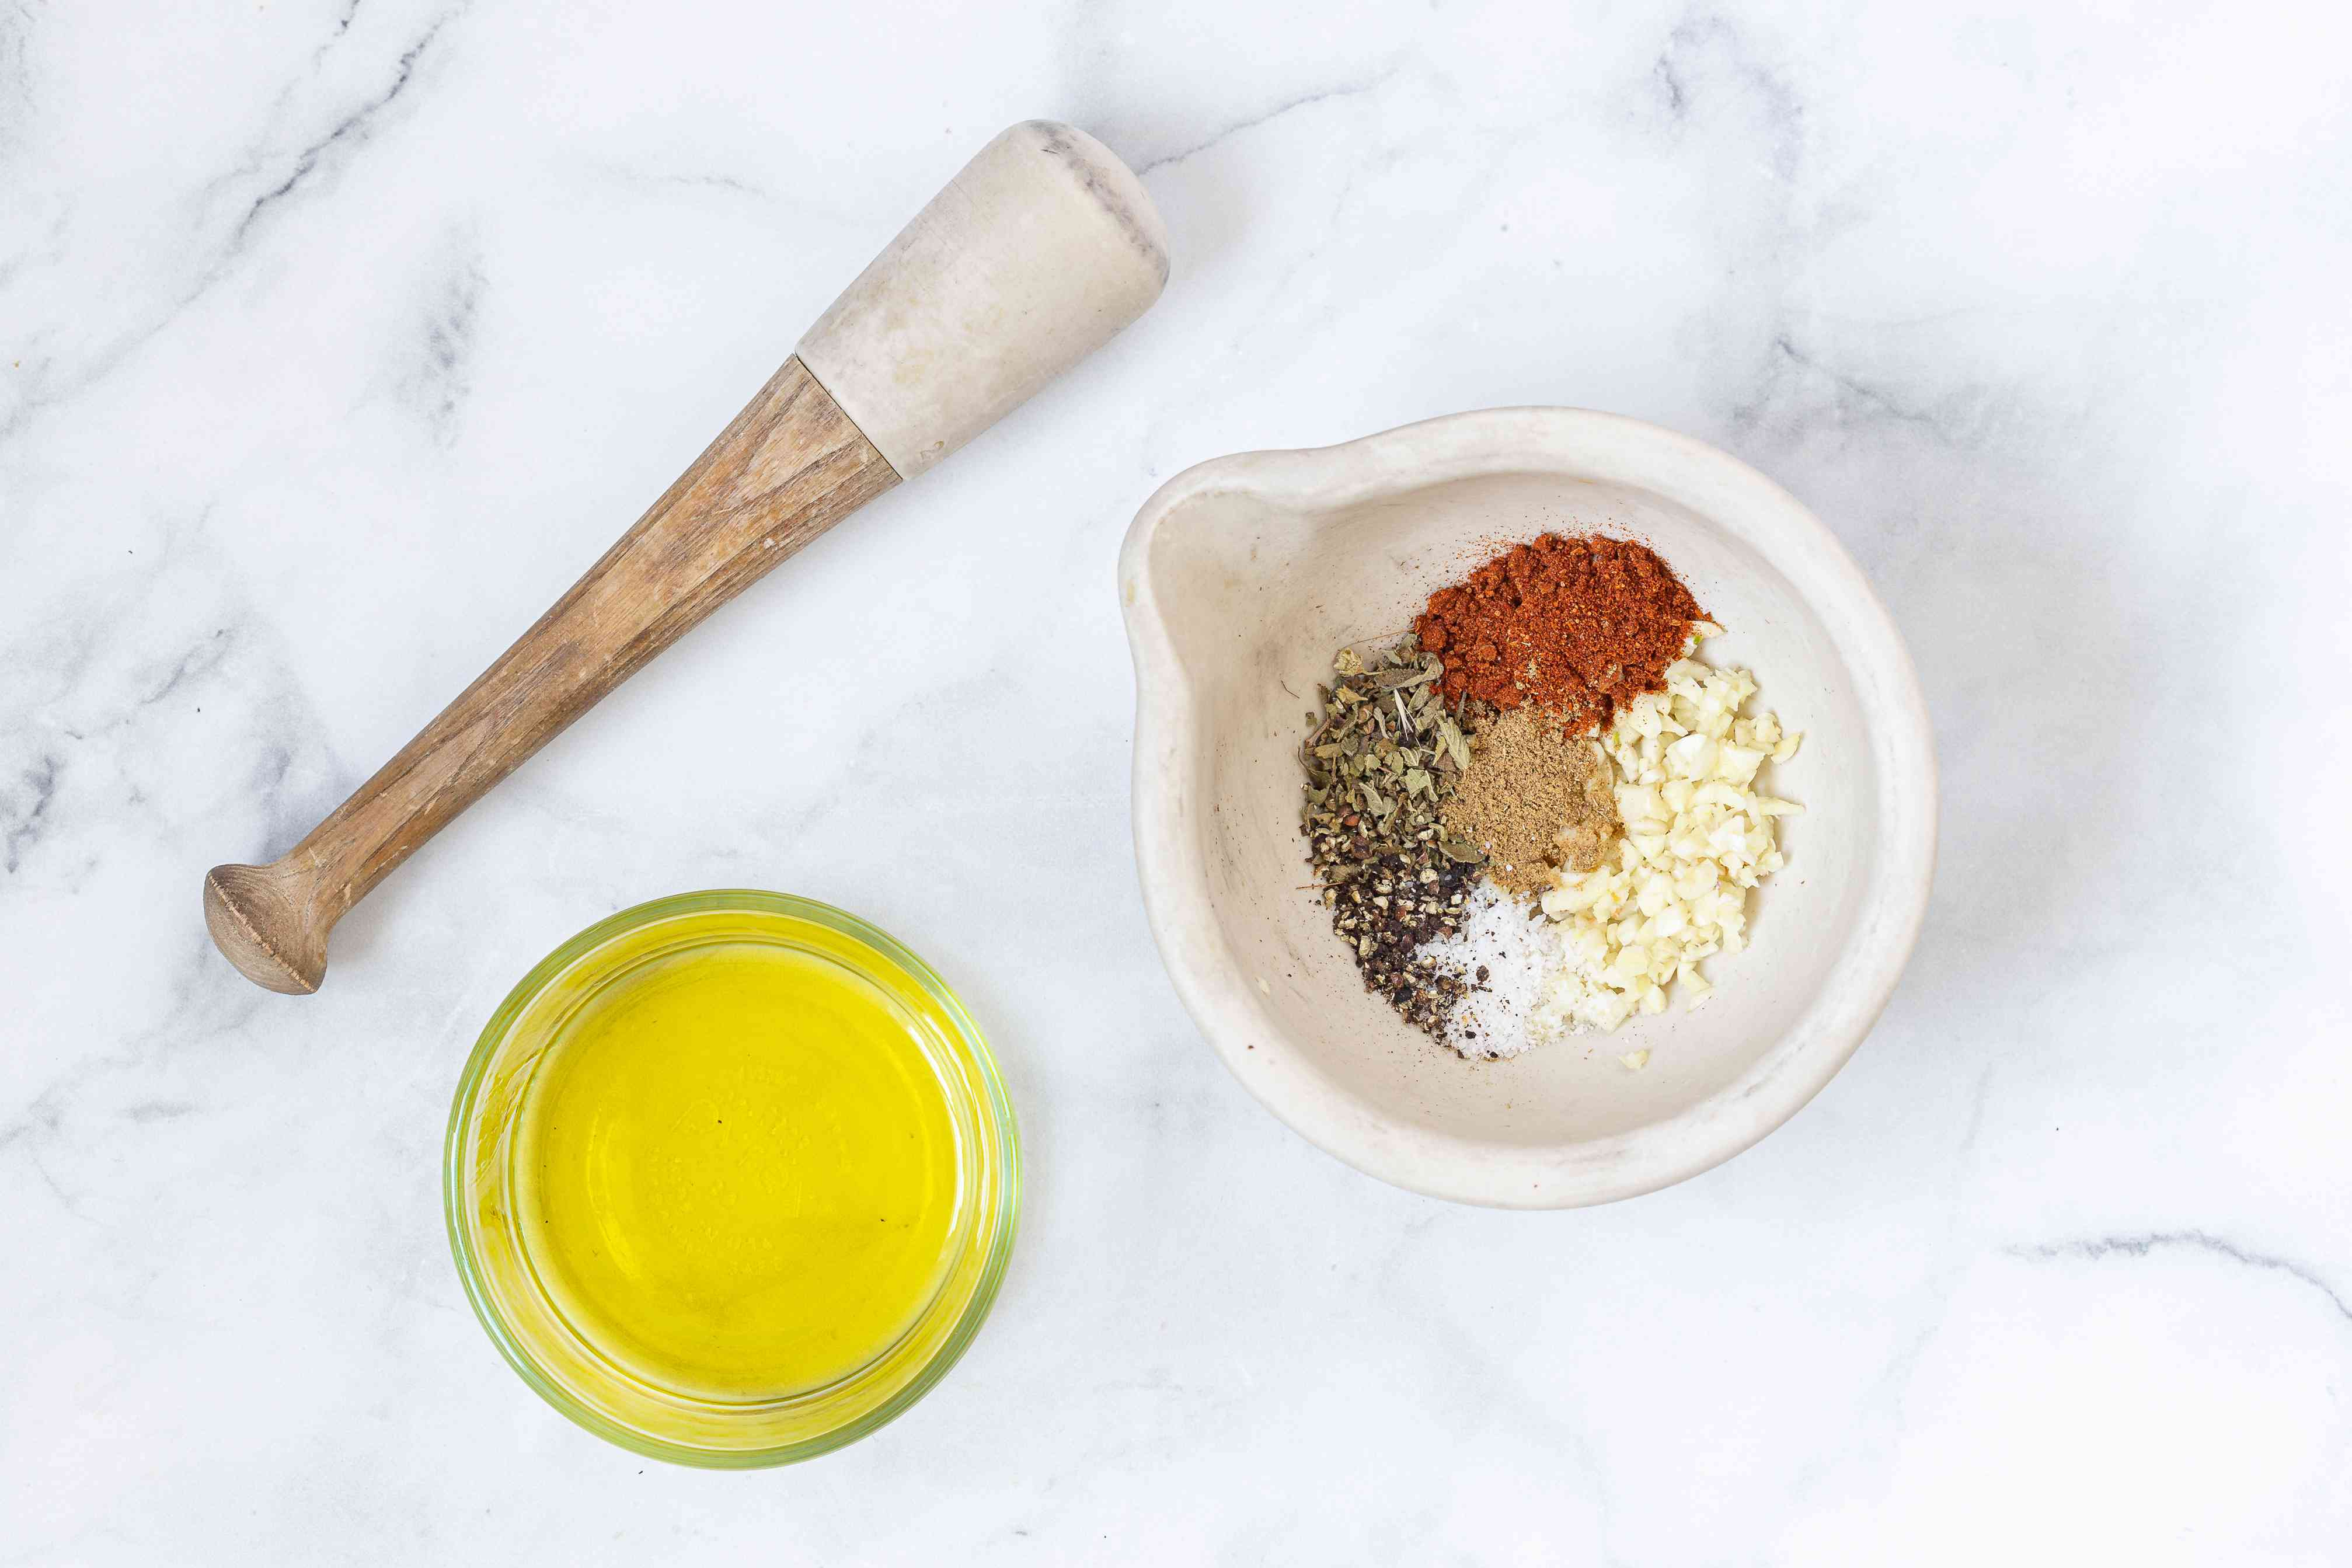 Combine garlic spices in a mortar and pestle